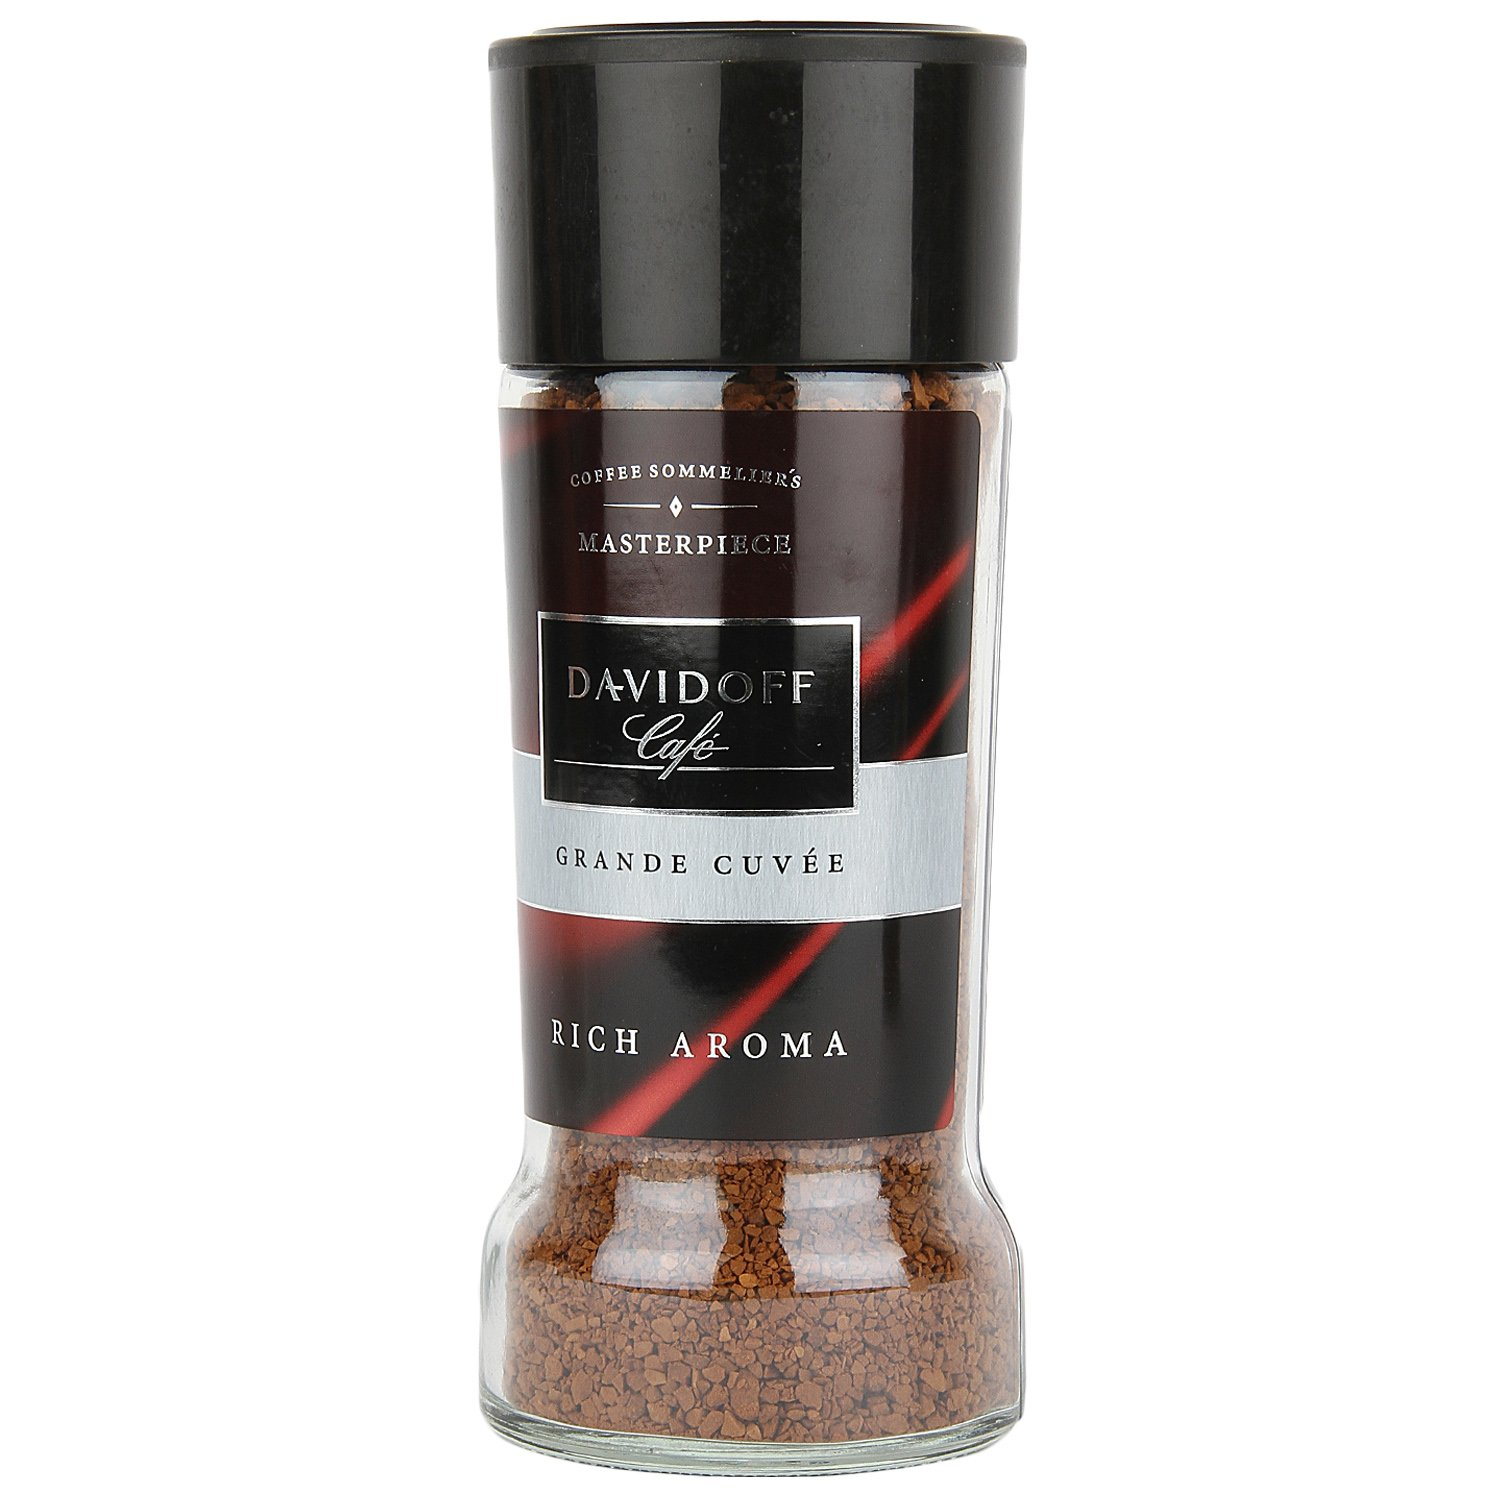 Davidoff Cafe Rich Aroma Instant Coffee, 100 gram Jars (Pack of 2)